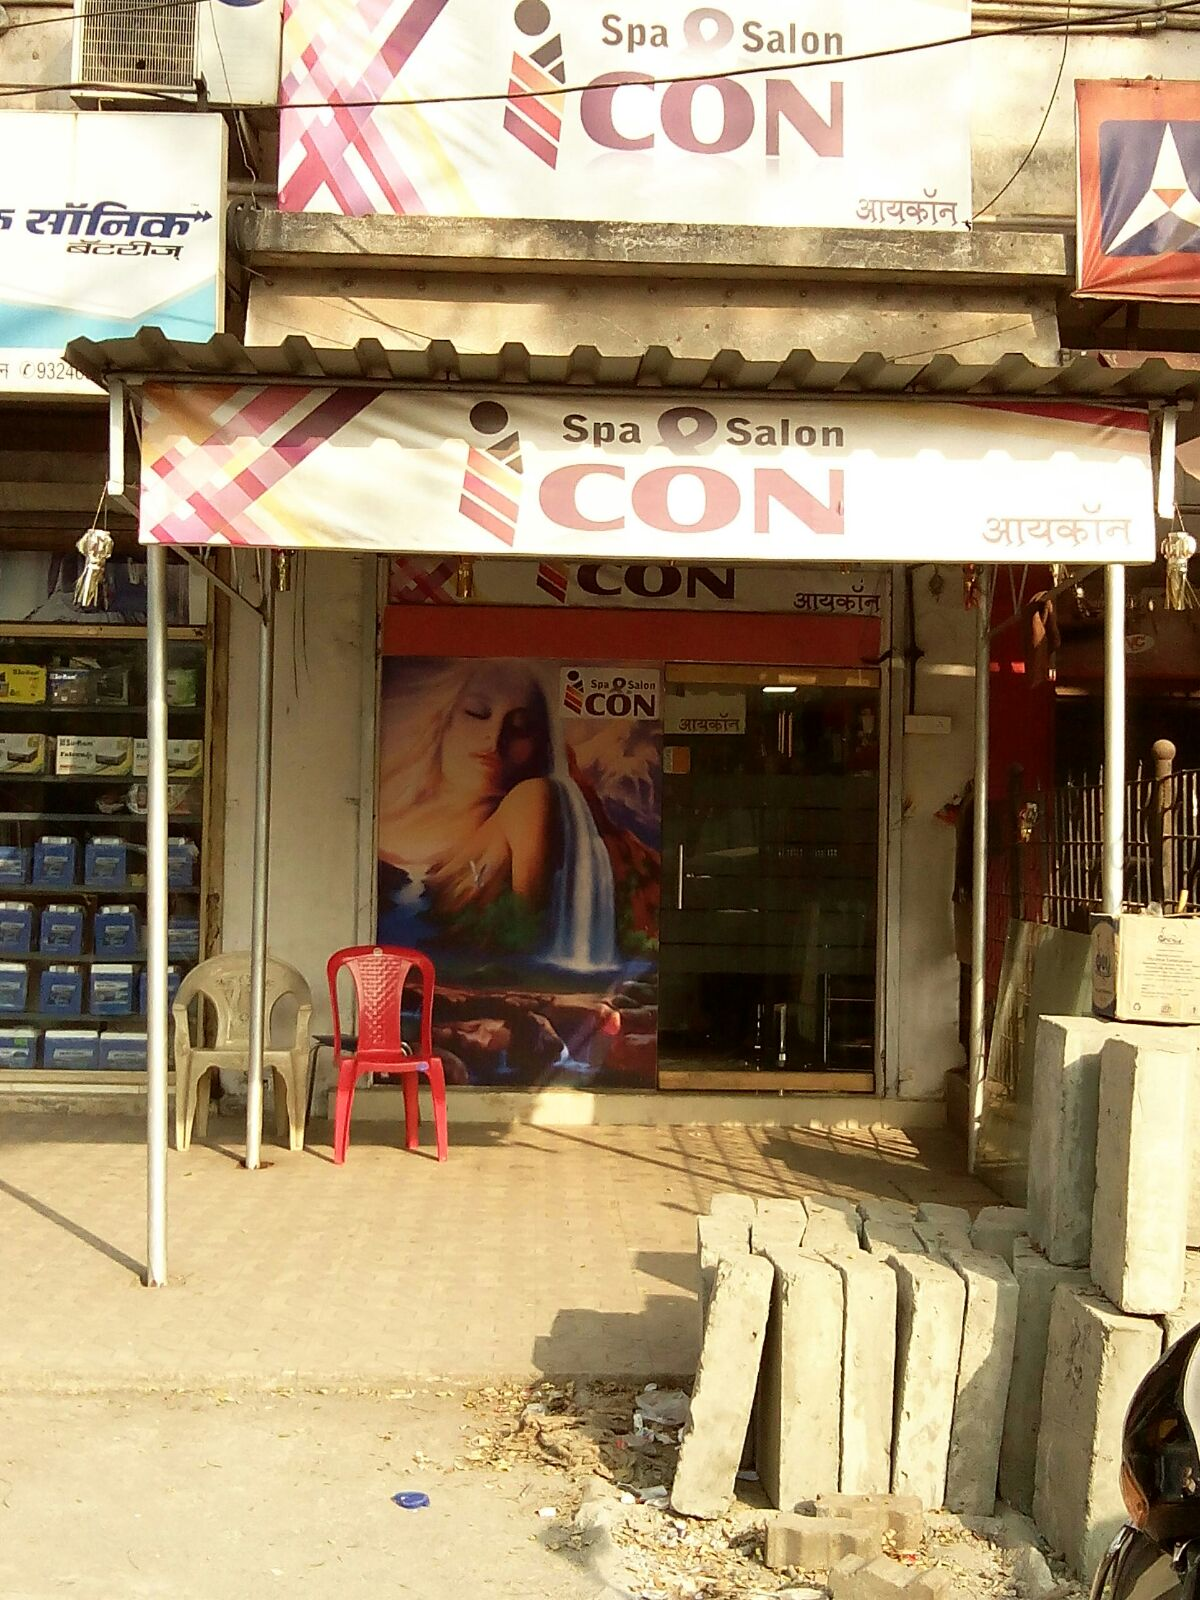 Icon Spas & Salon